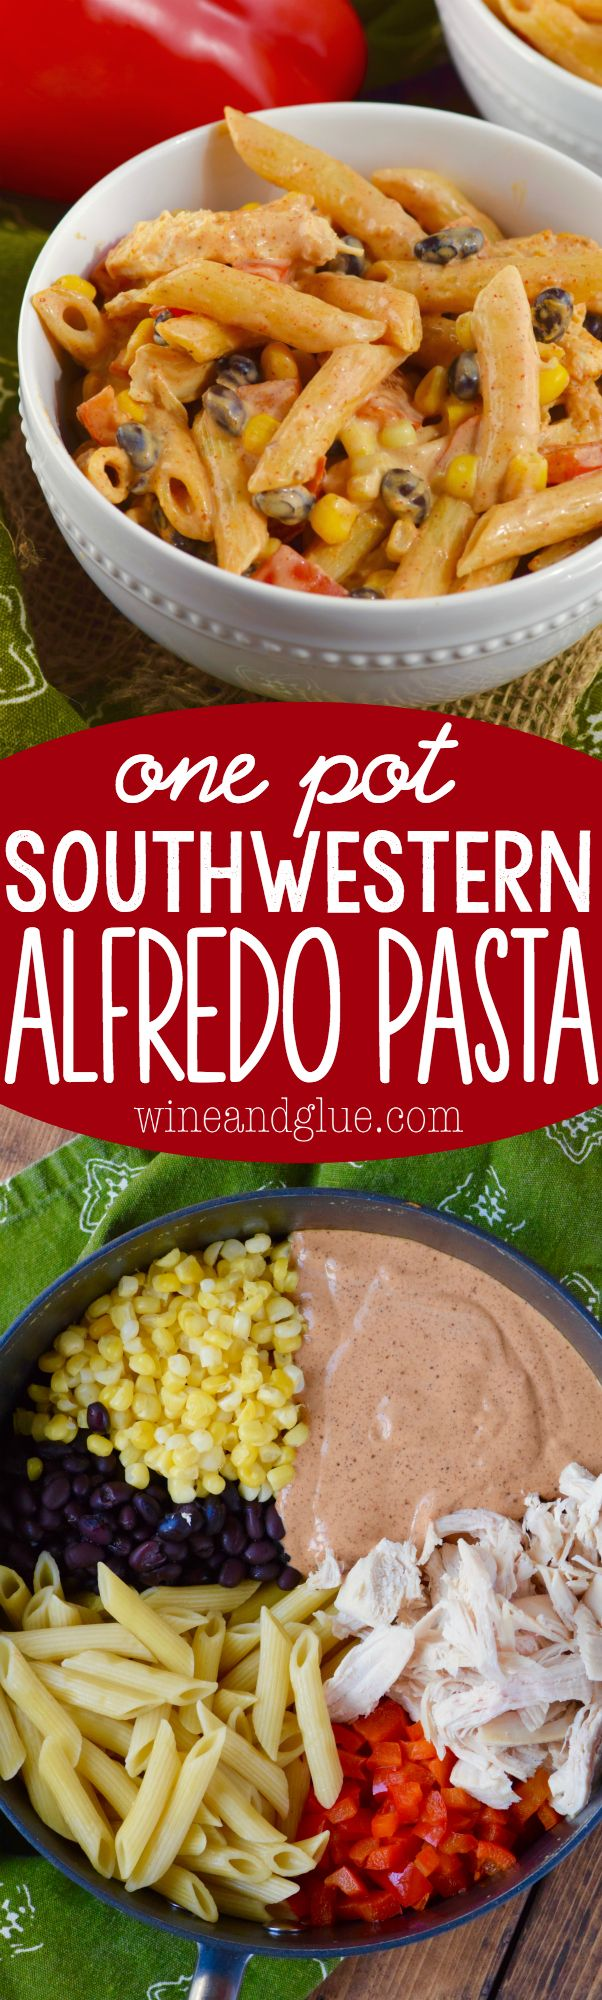 This One Pot Southwestern Alfredo Pasta is super easy to throw together, makes…: